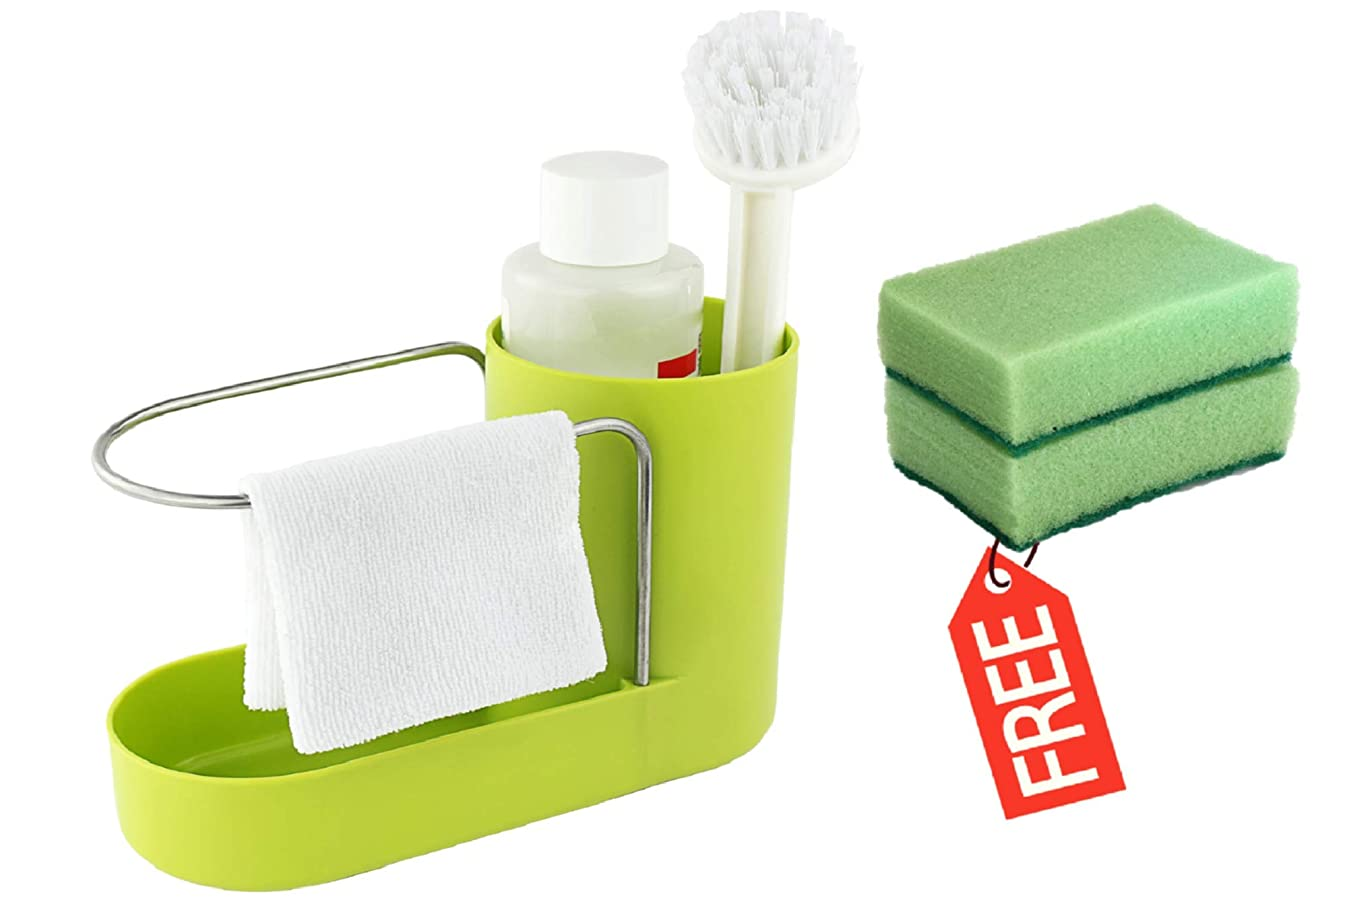 Convenient Kitchen Sink Organizer, Sink Caddy, Sinkware, Sponge Holder, Soap Dish, Brushes and Scrubbers Holder, Bathroom Caddy, Bathroom Organizer   2 Top Quality Sponges FREE